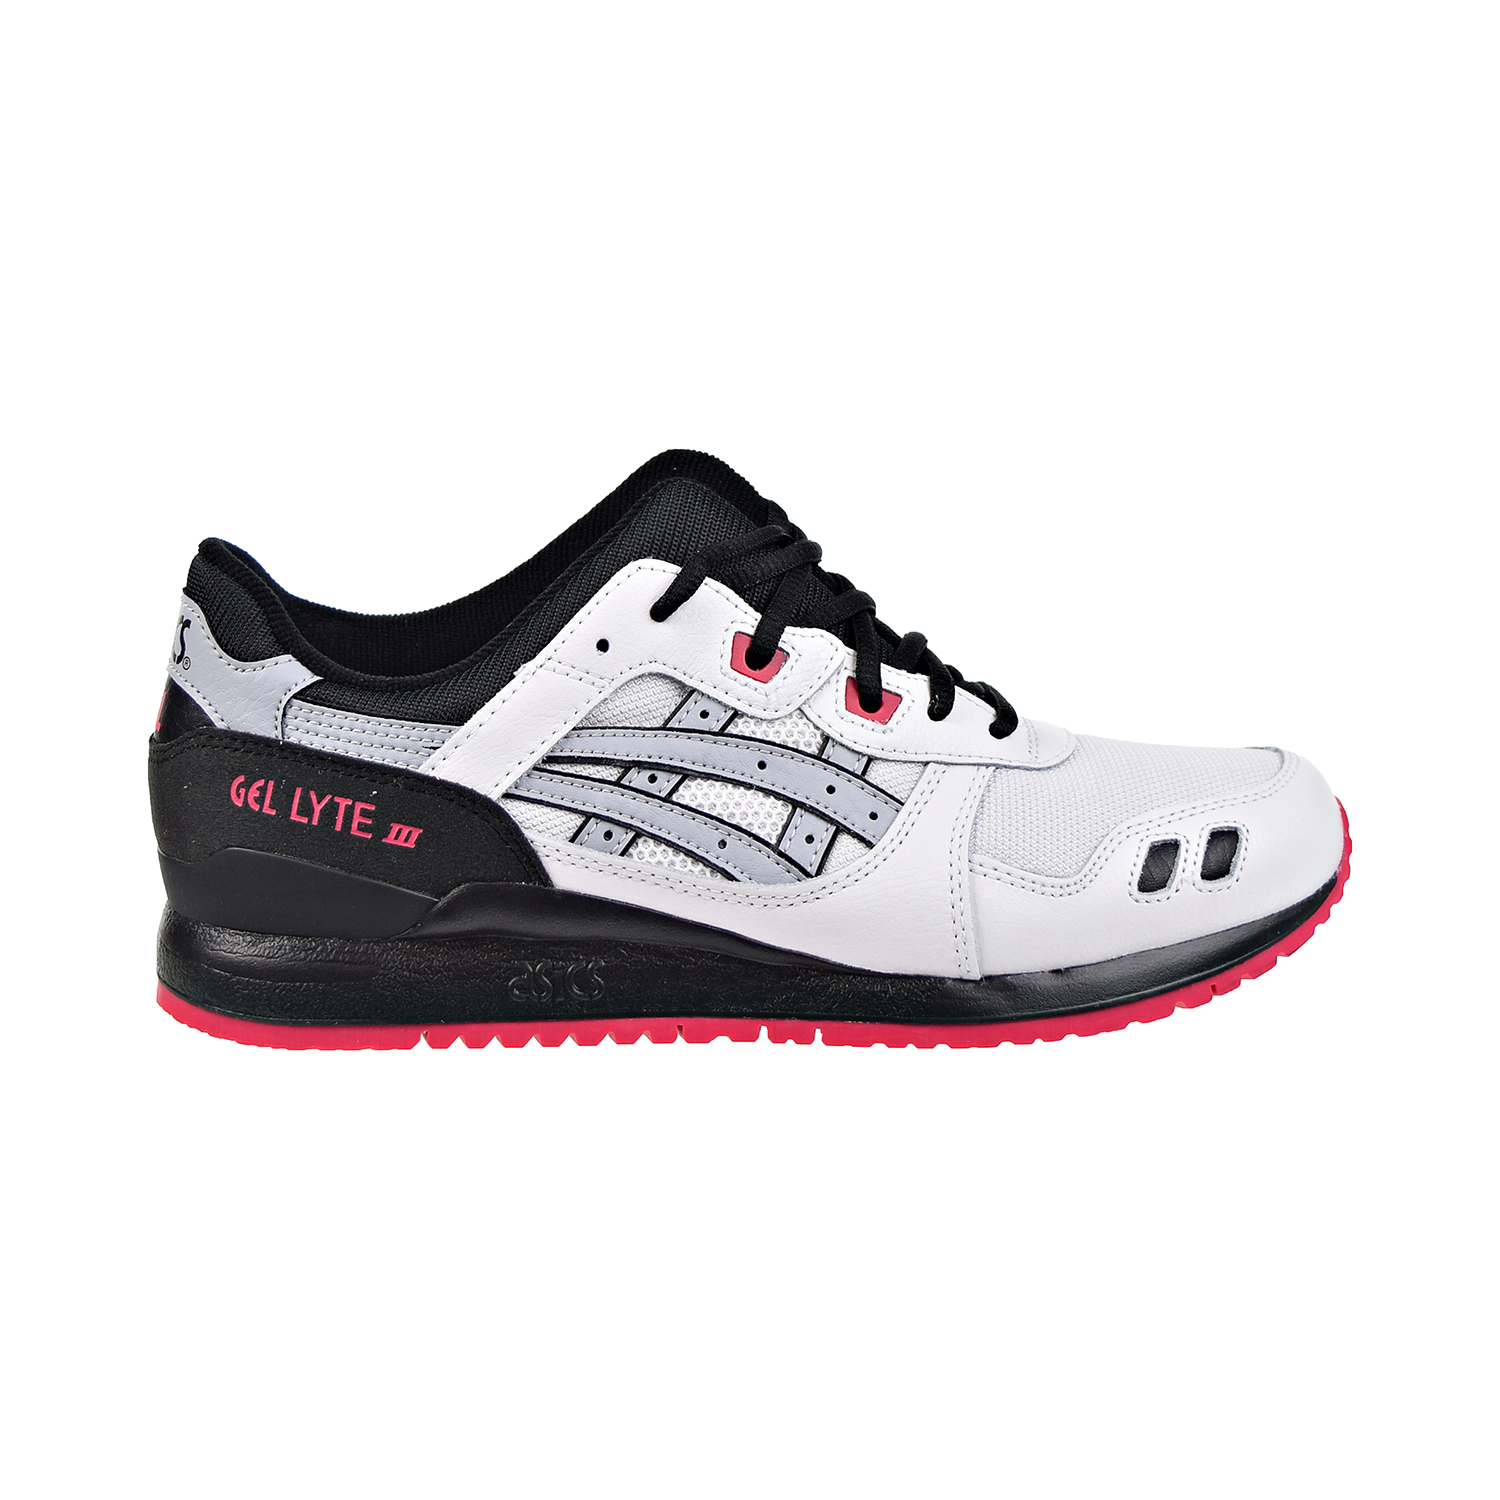 reputable site 577d3 8eb6b Details about Asics Tiger Gel-Lyte III Mens Shoes White/Piedmont Grey  1191A245-100